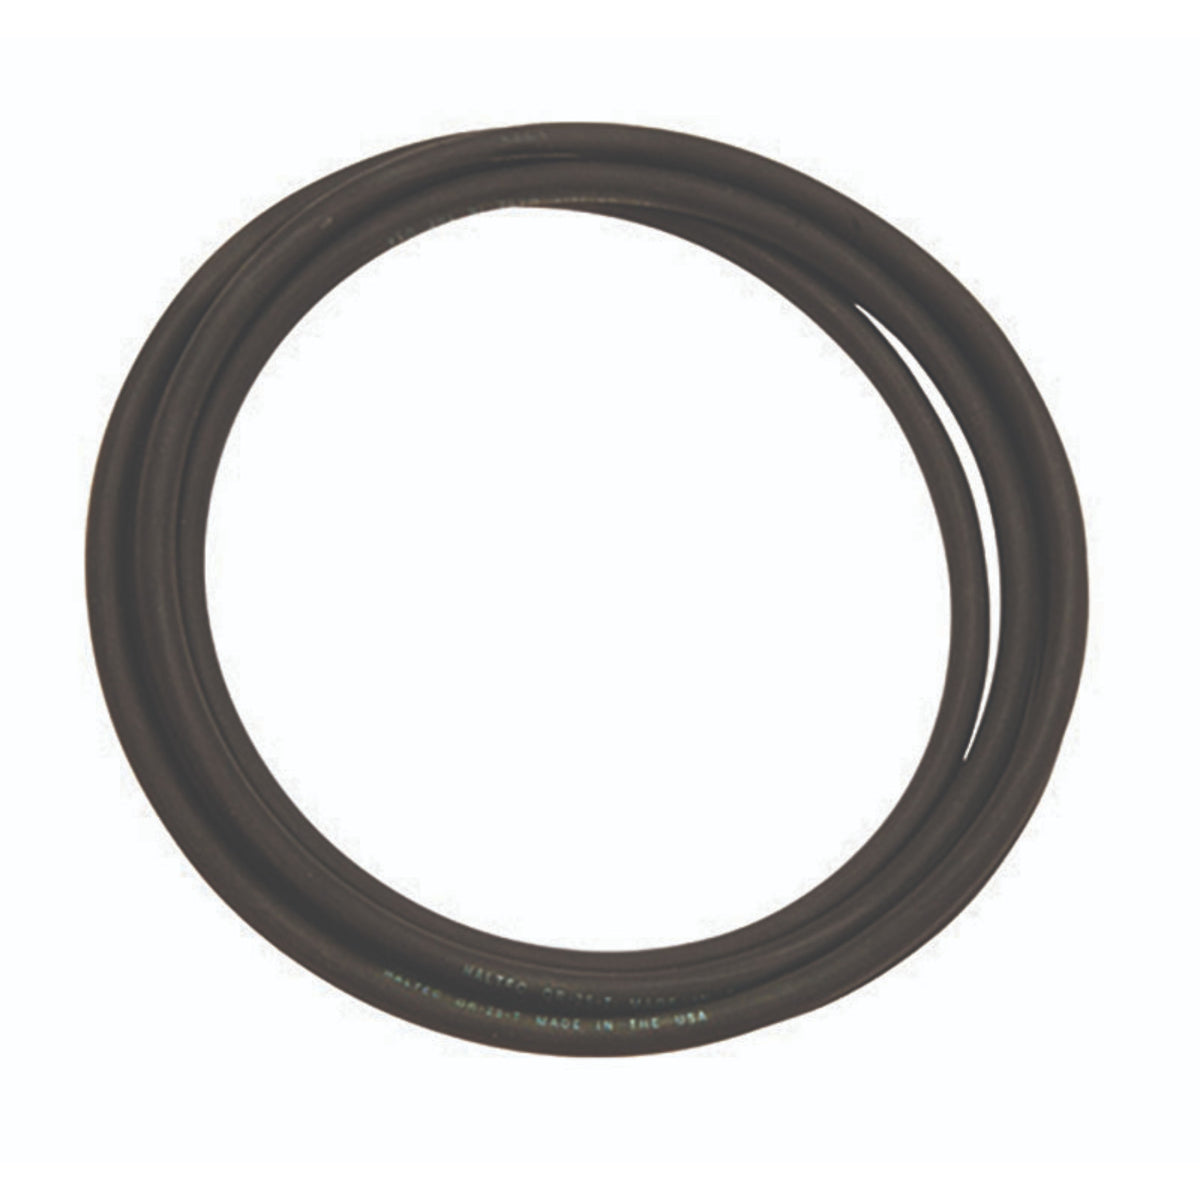 Haltec O-Ring (25″) (2 Pieces) (OR-25-T)